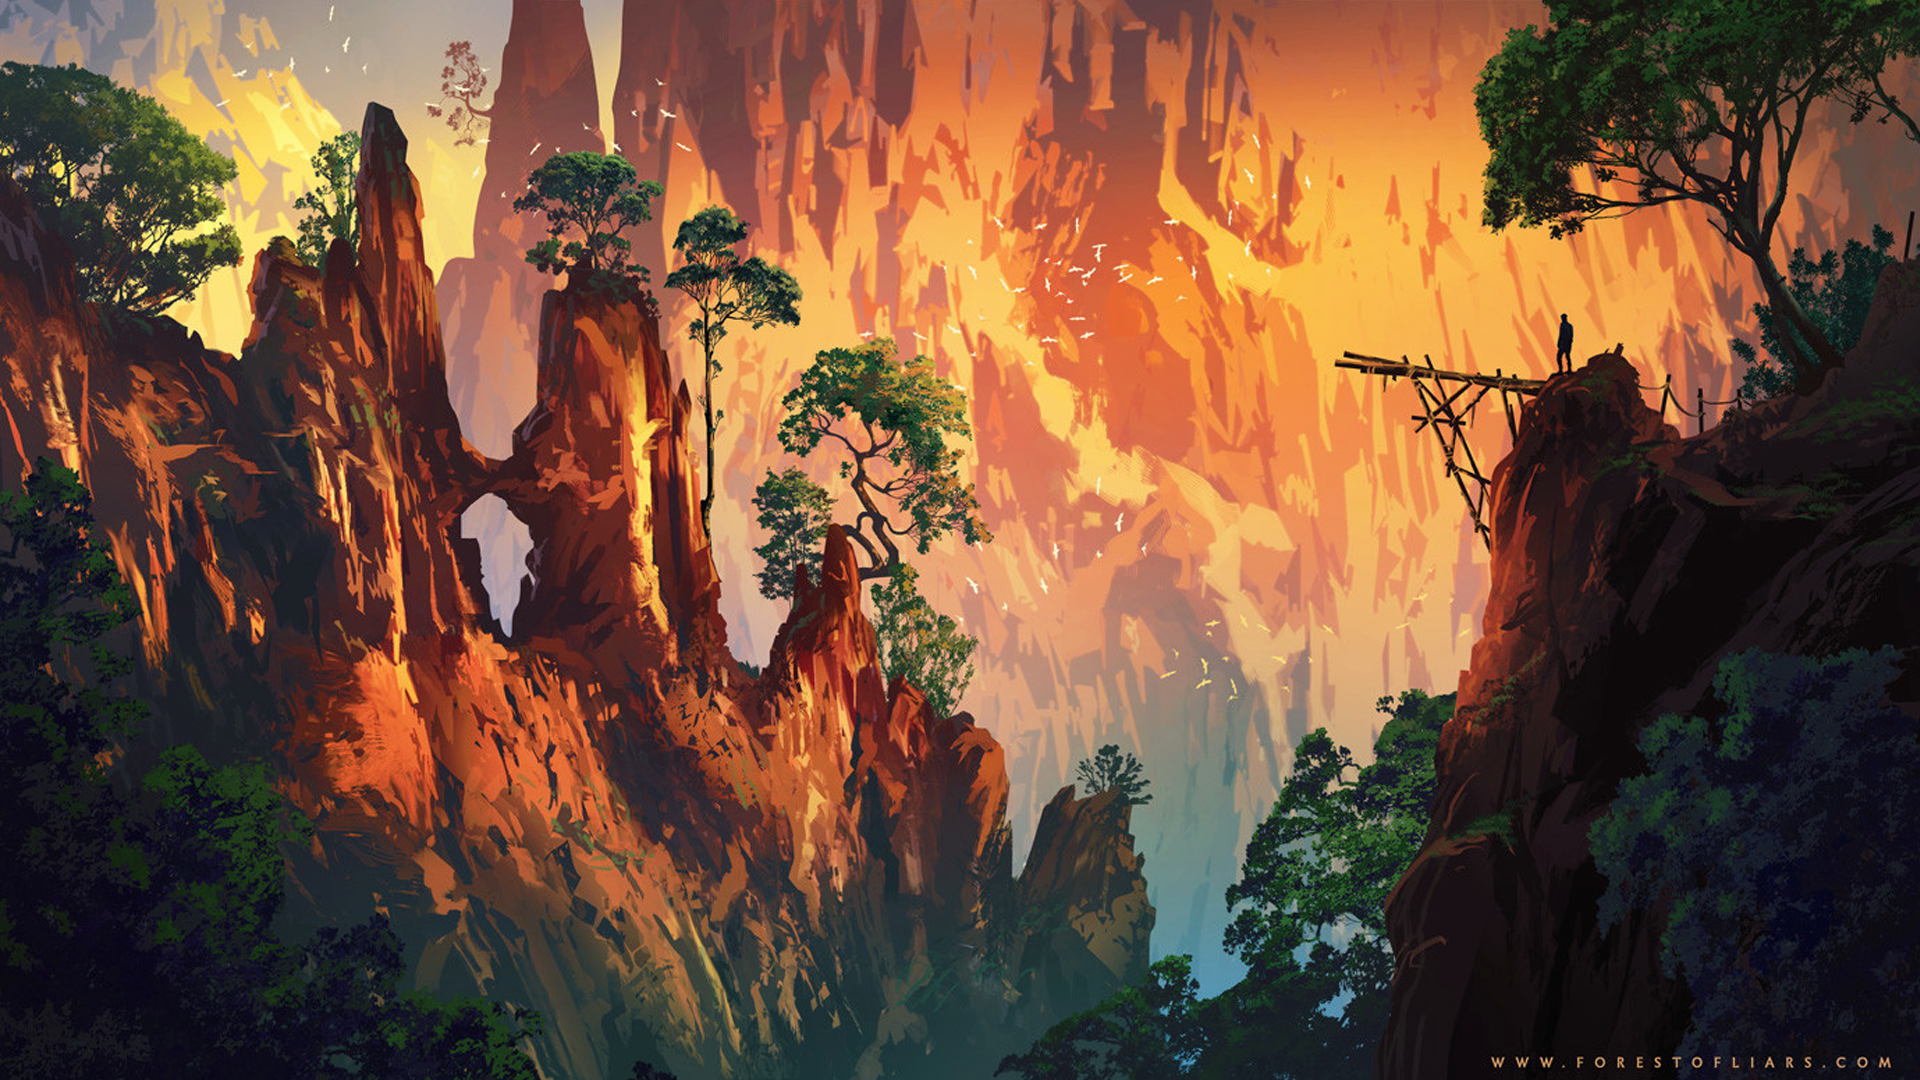 General 1920x1080 Sylvain Sarrailh Forest of Liars cliff landscape birds trees video game art artwork digital art